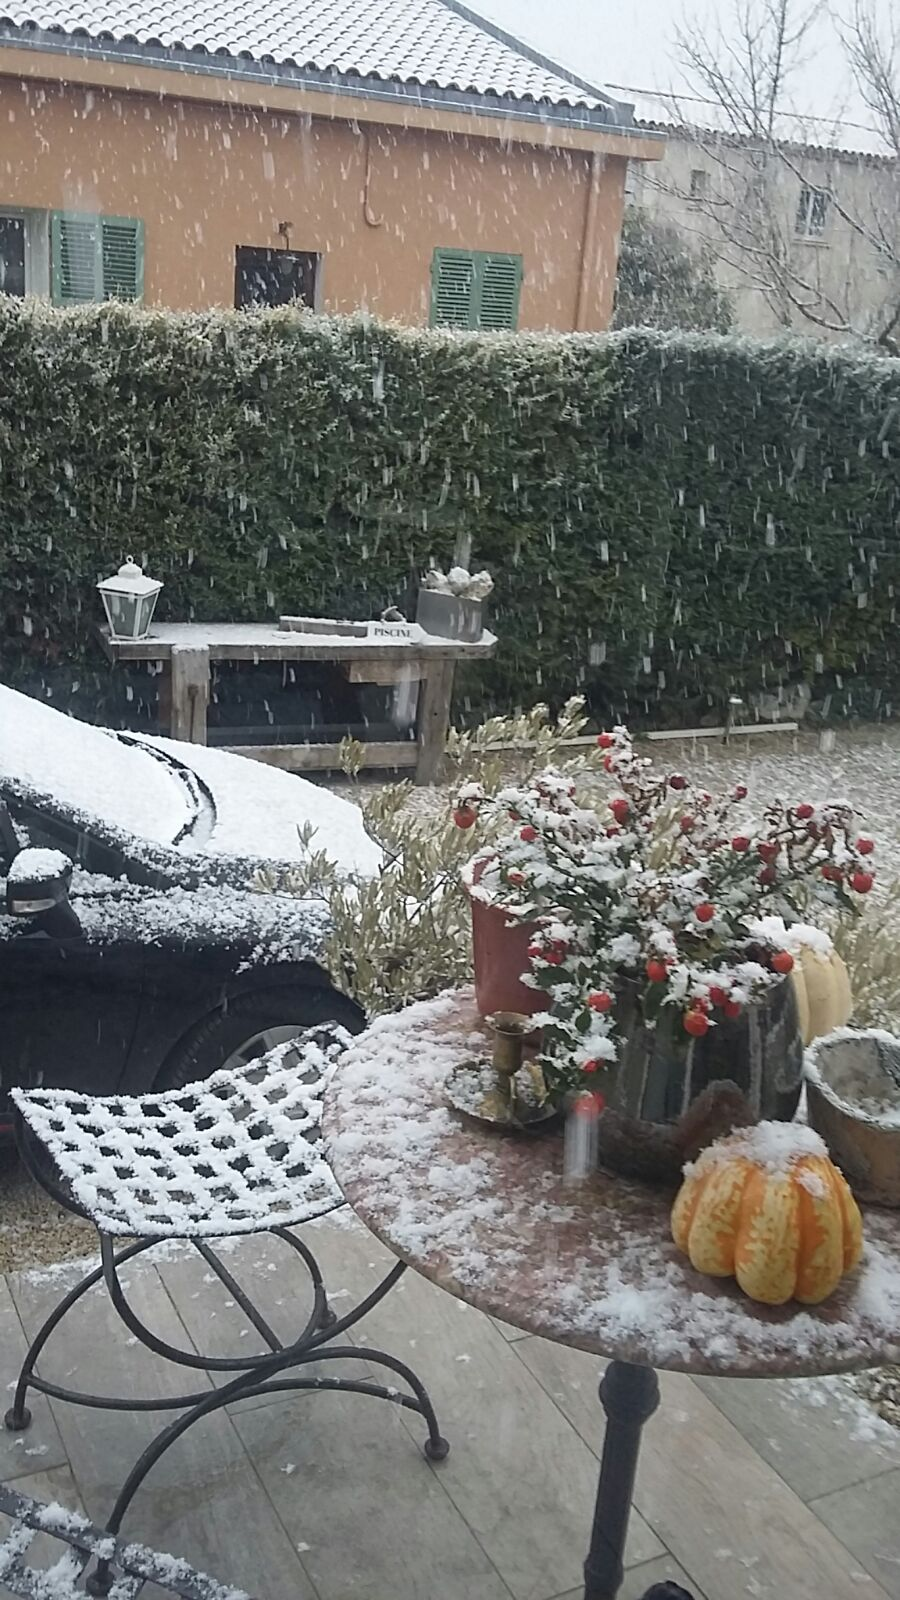 This picture shows that even in Aix en Provence, it is possible to get some snow! Admittedly, it is a rare event